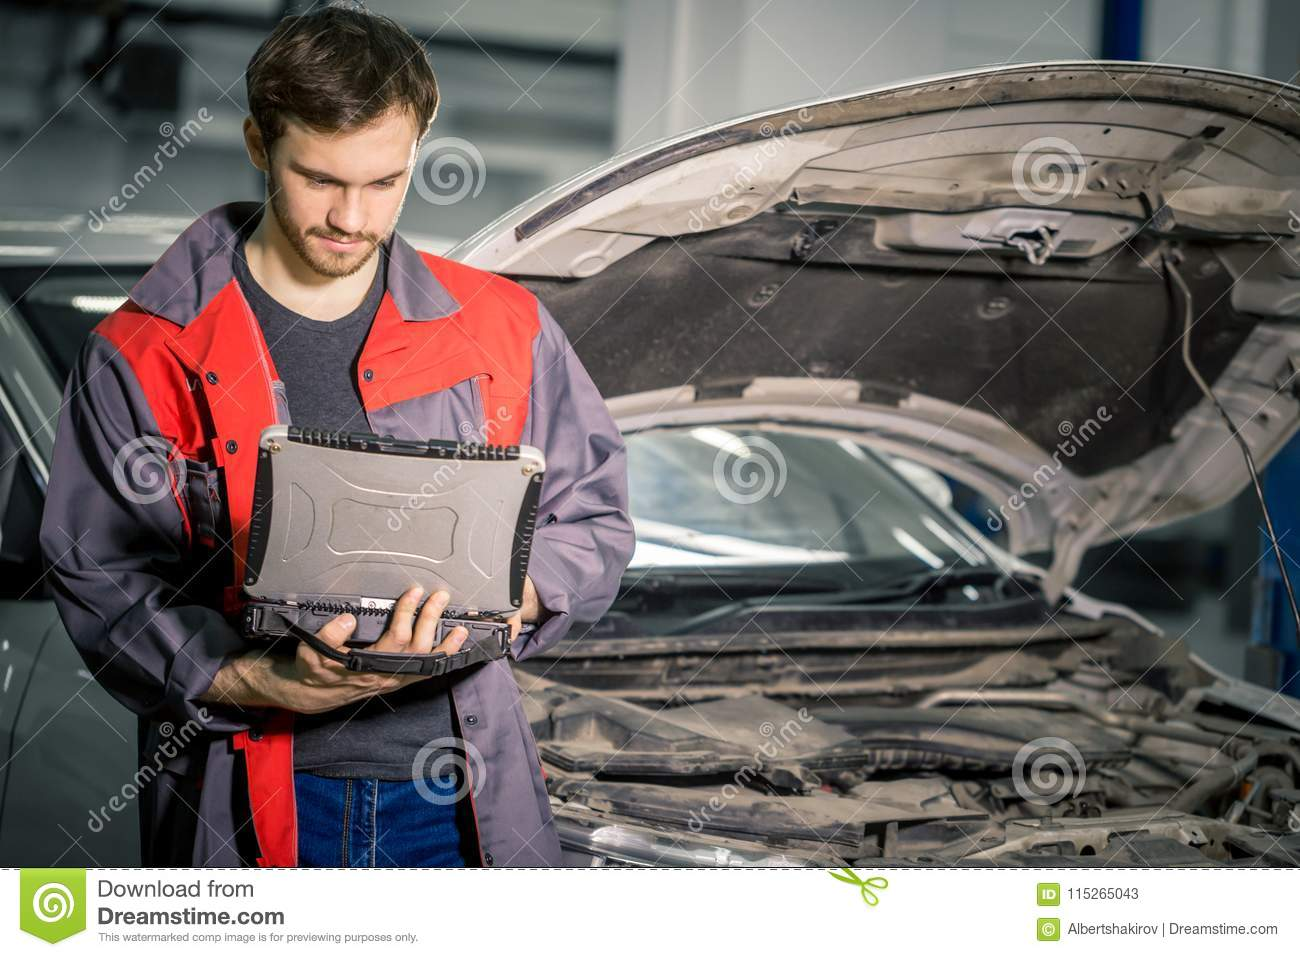 Very special car mechanics